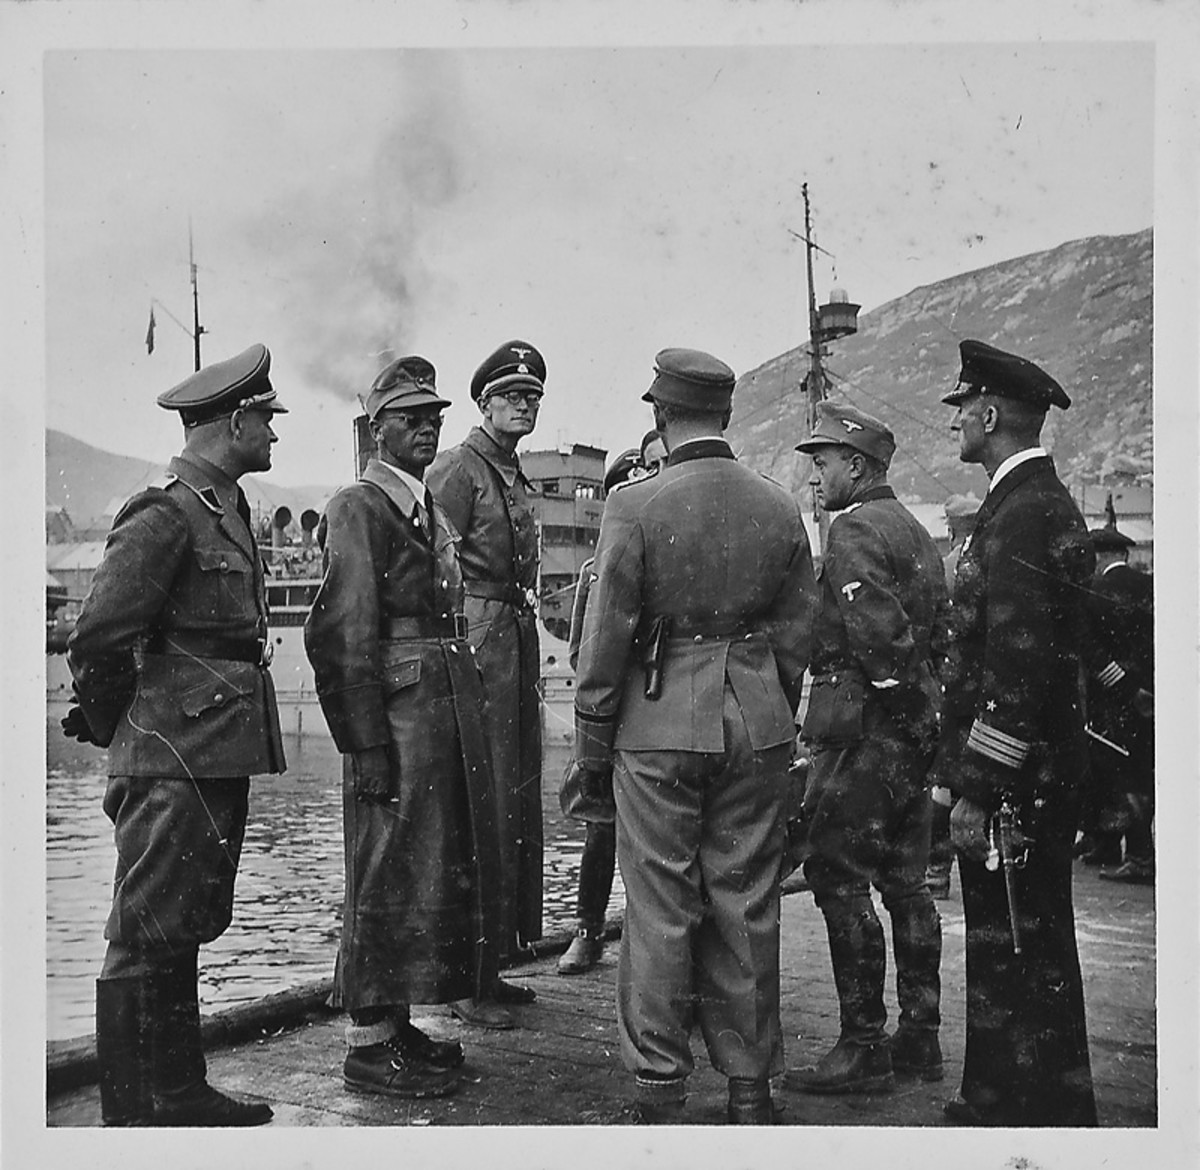 The pride of the Third Reich endures a bit of inclement weather in the Hammerfest harbour. Second from left is Josef Terboven head of the German occupation. When Germany surrendered he blew himself up.